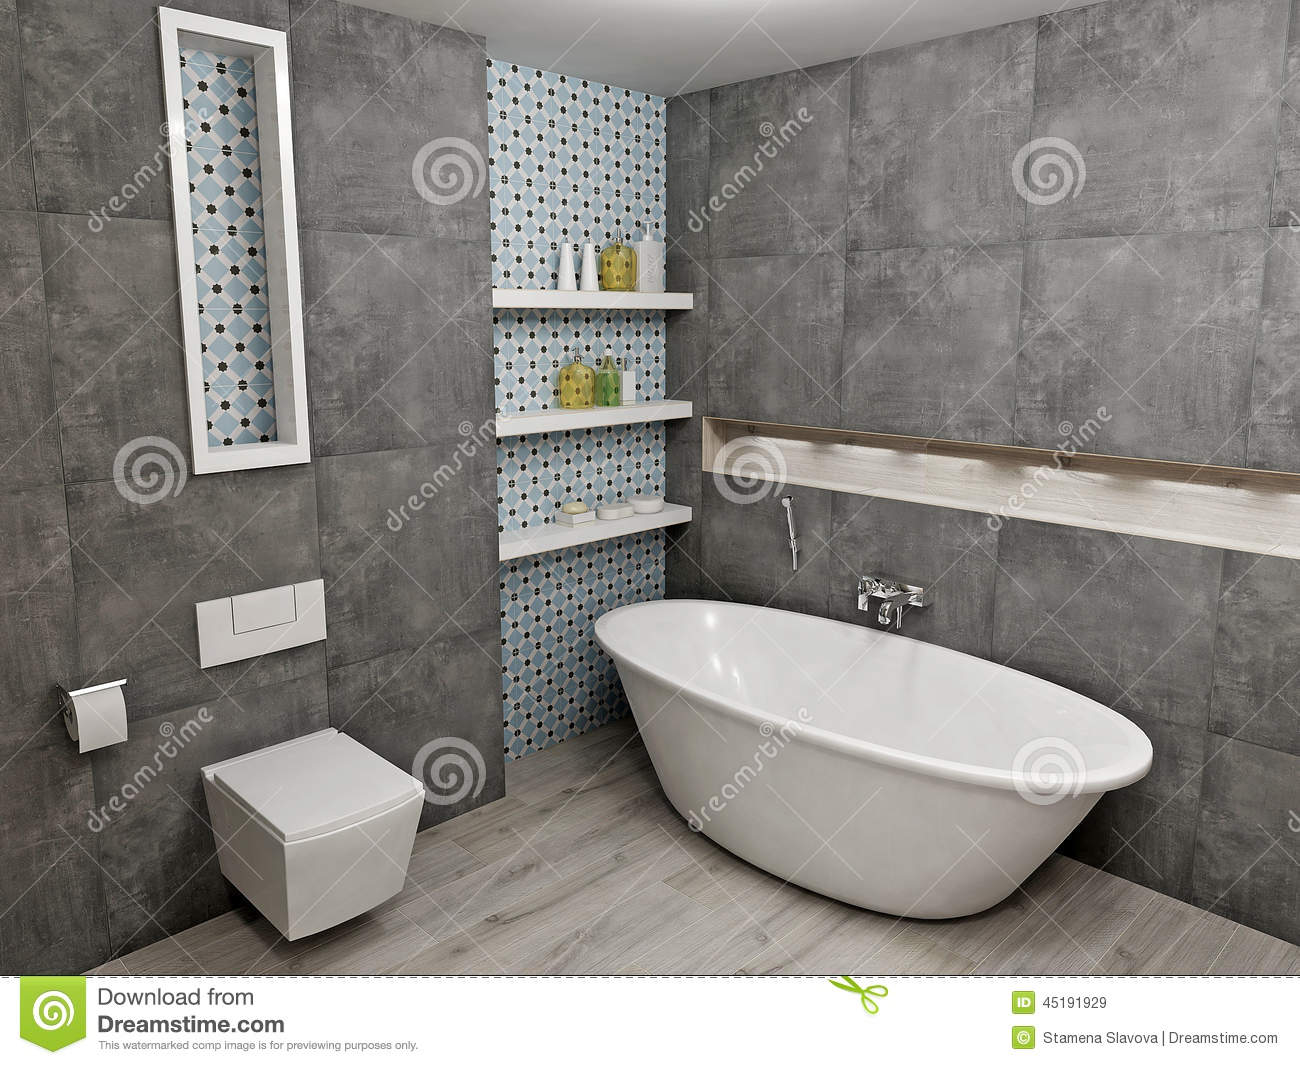 Piastrelle Per Bagni Moderni Modern Gray Bathroom Stock Illustration. Illustration Of